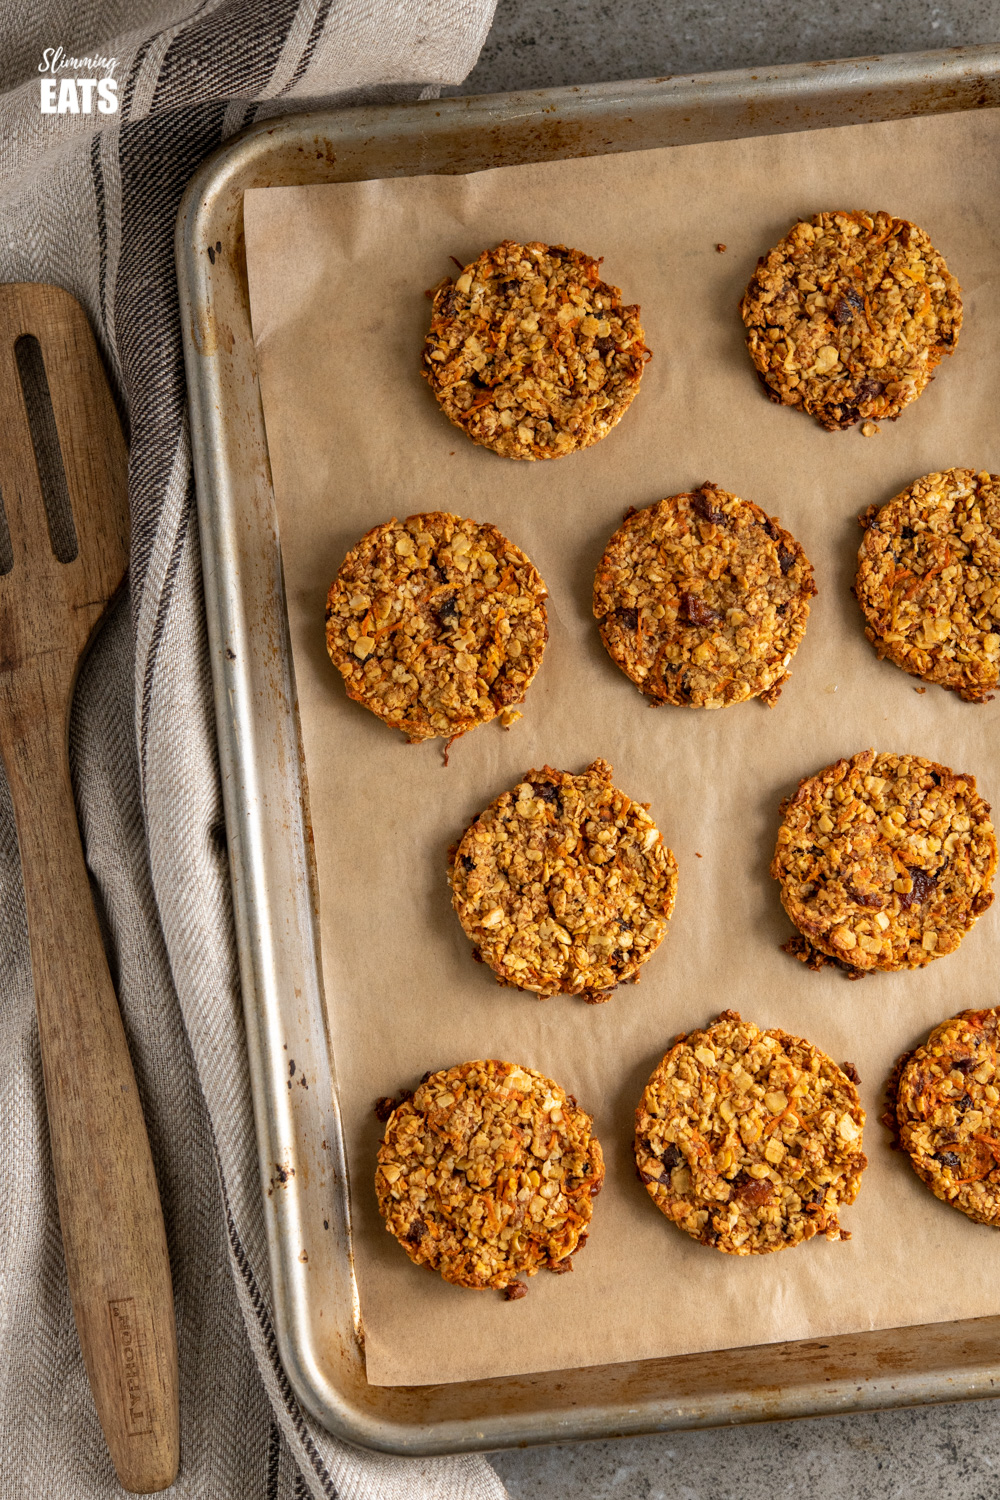 carrot cake flapjack cookies fresh out of the oven on a parchment lined baking tray